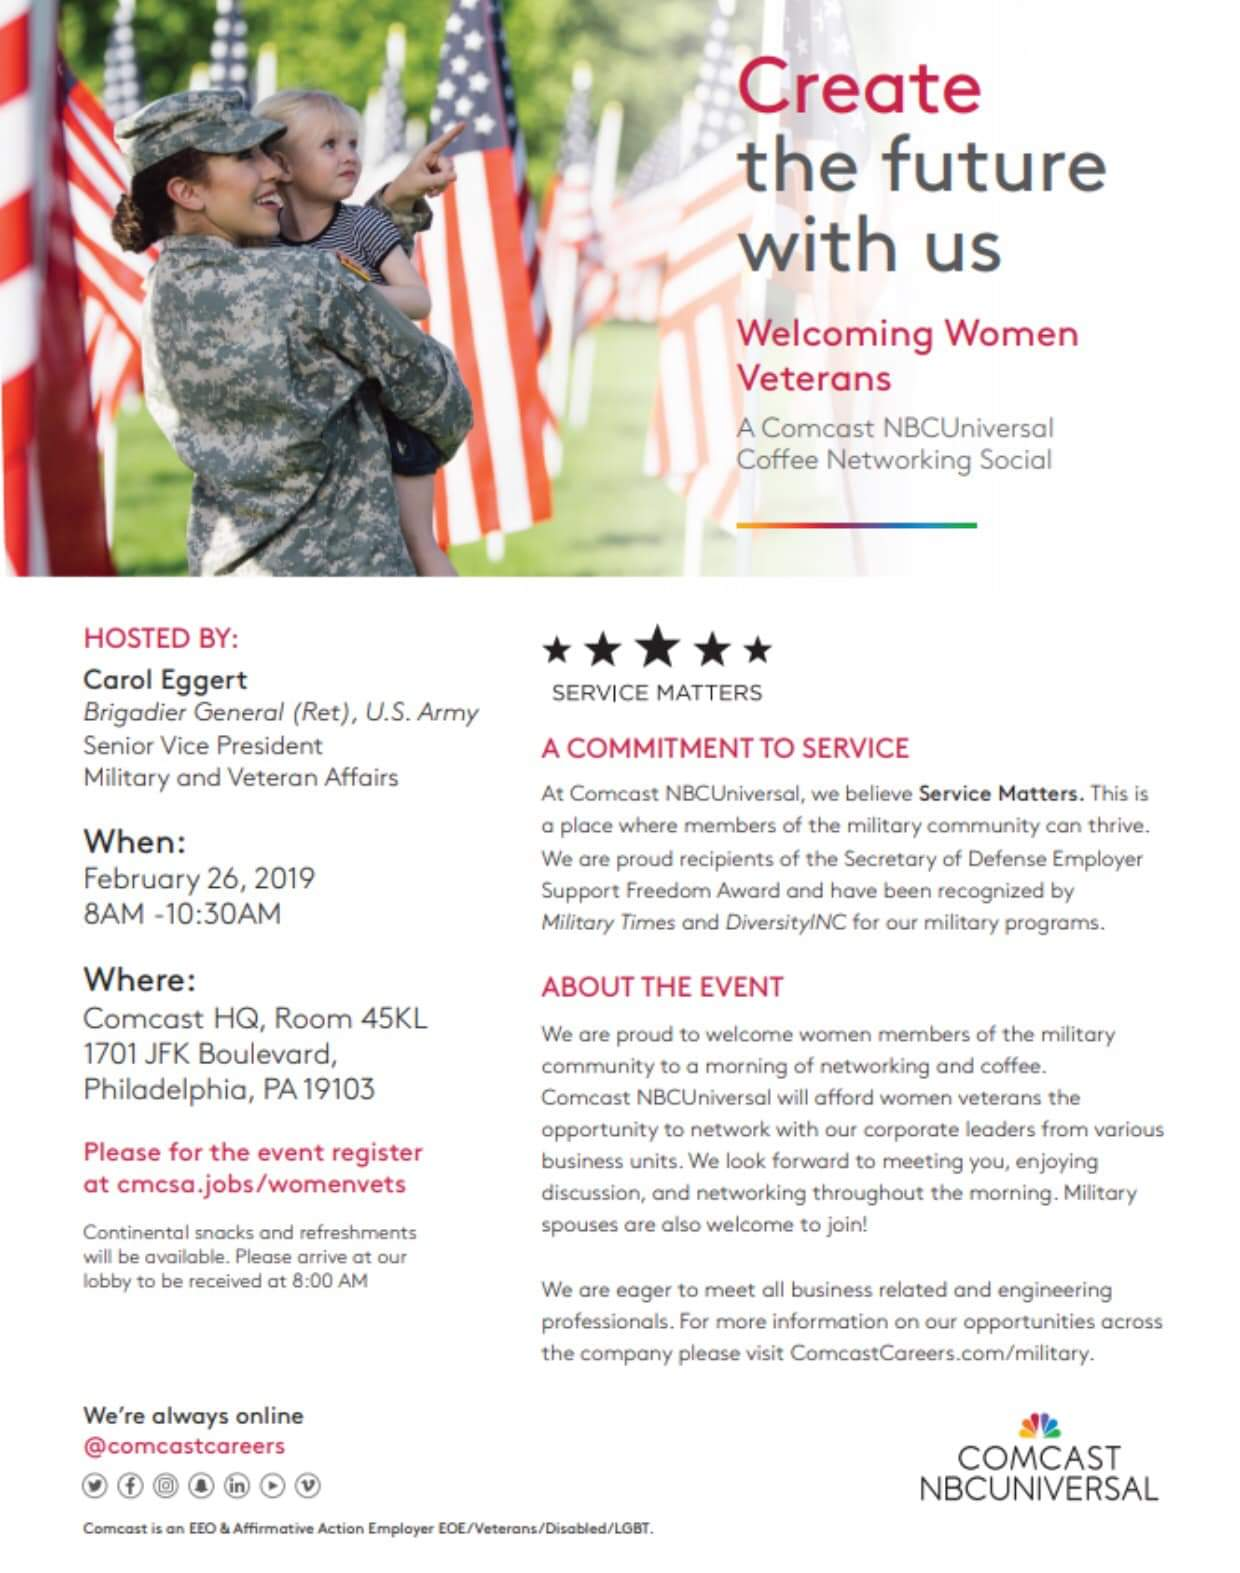 4c2f3f8f6 Create the future with us. Welcoming Women Veterans. We are proud to  welcome women members of the military community to a morning of networking  and coffee ...